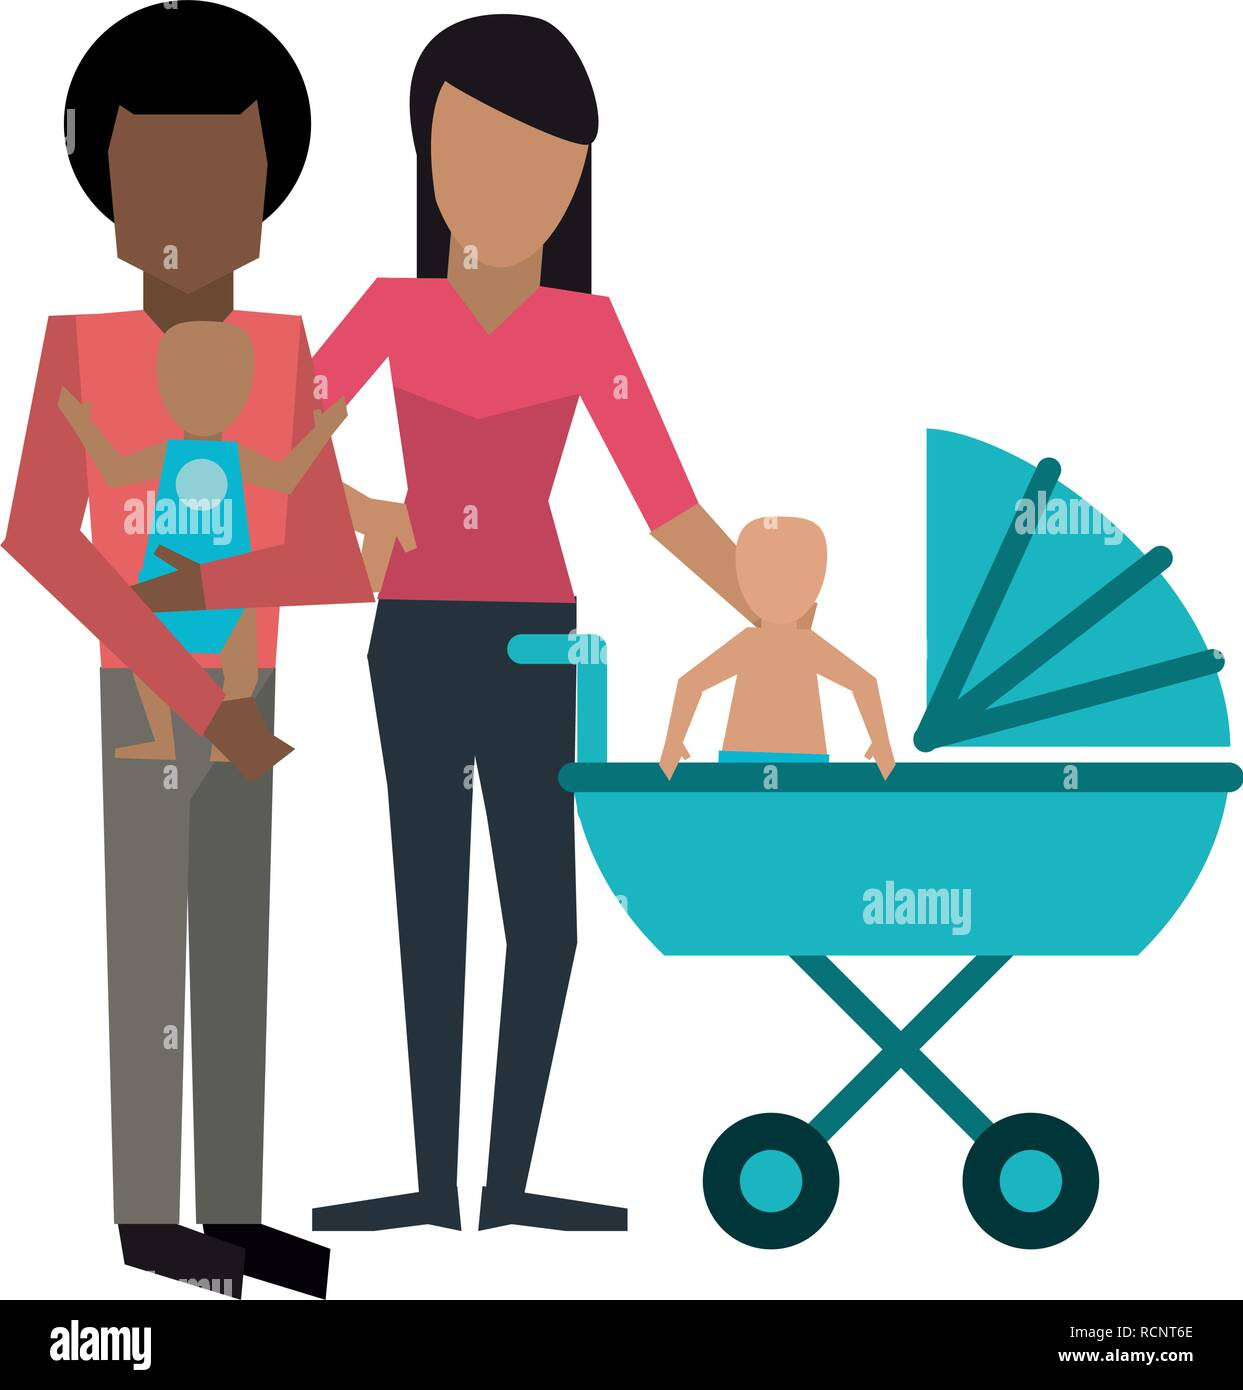 Family avatar concept - Stock Vector